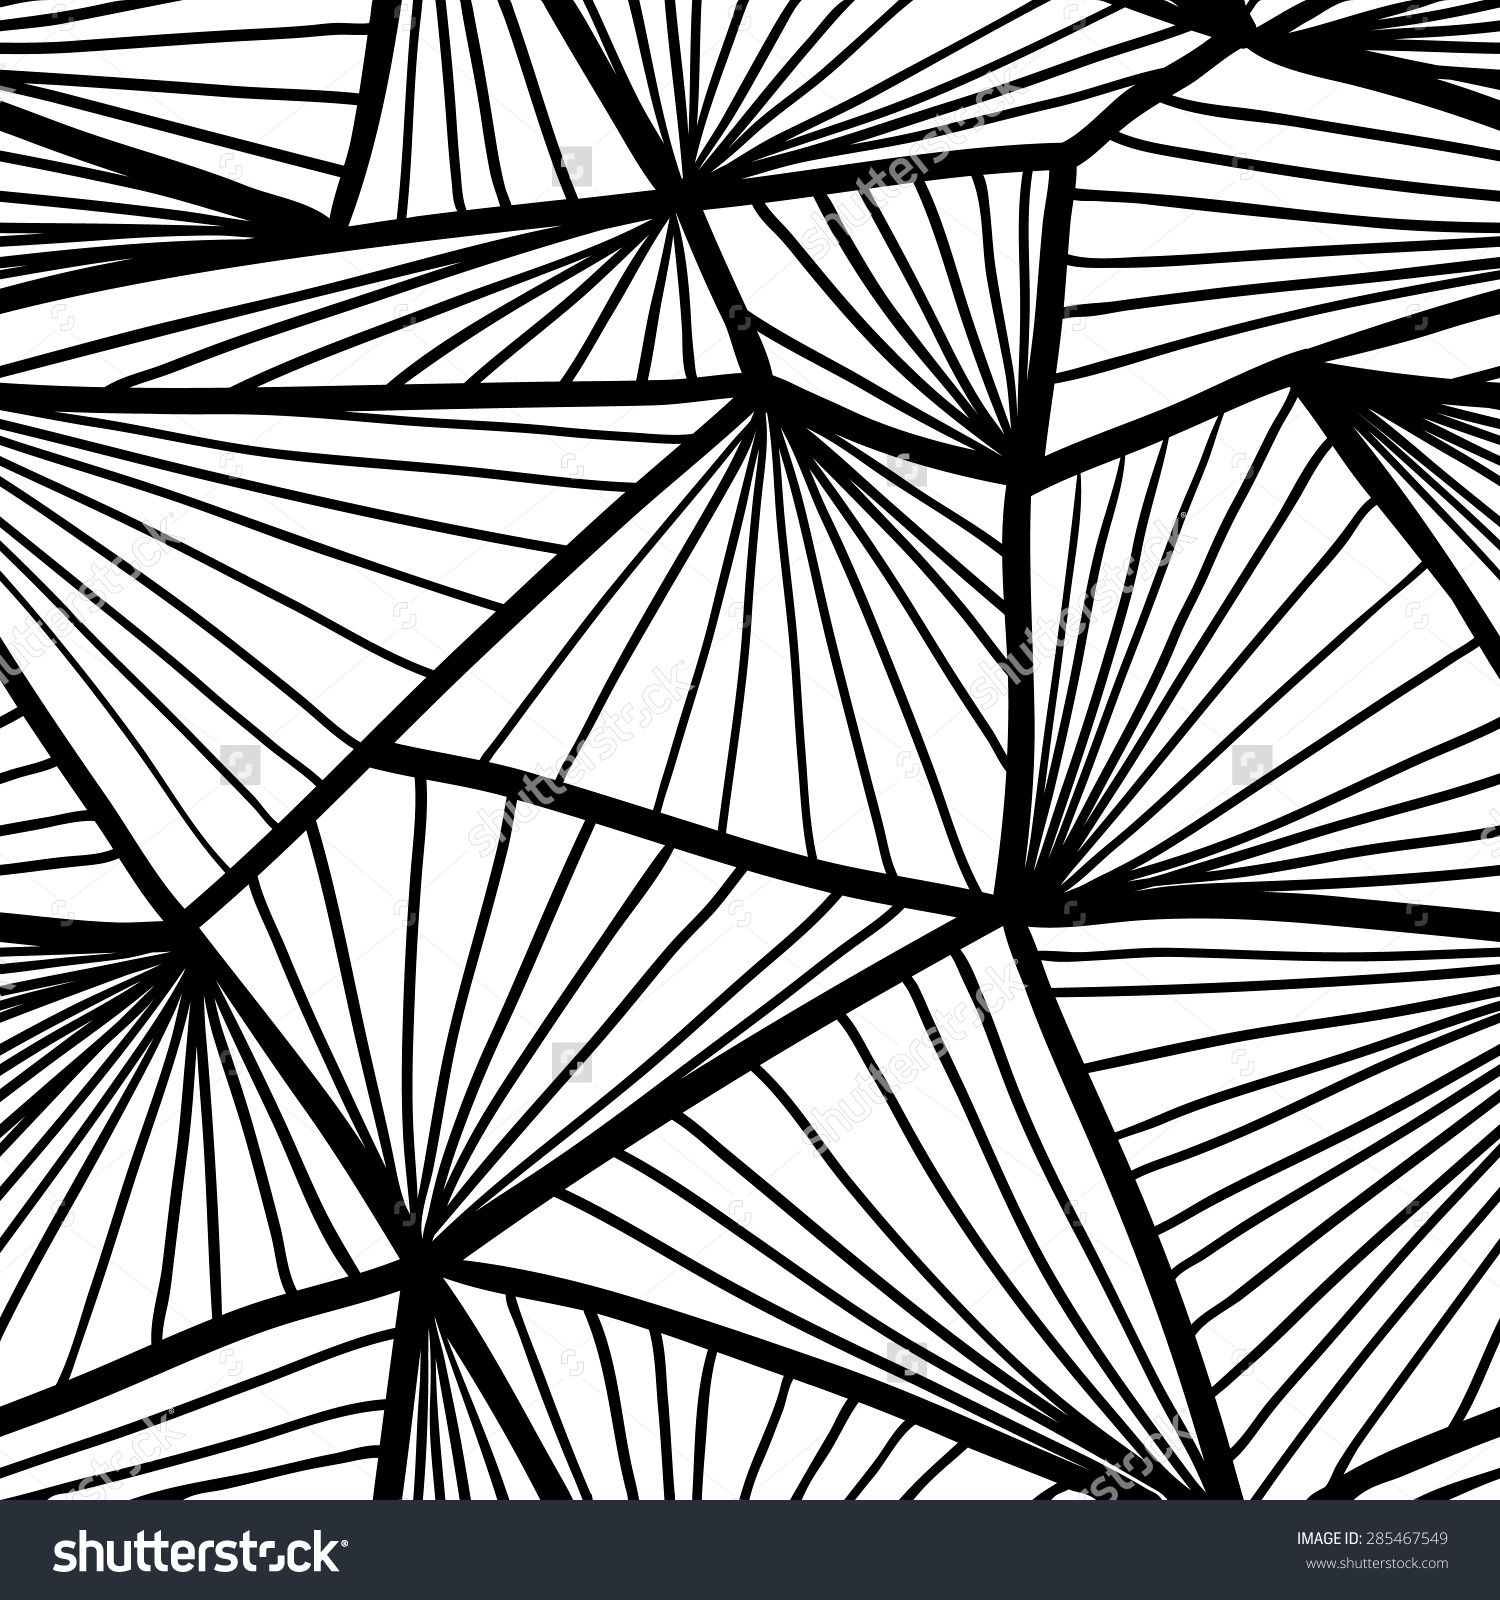 Seamless Pattern With Geometric Shapes, Textured Background For ... for Geometric Shapes Design Black And White  300lyp